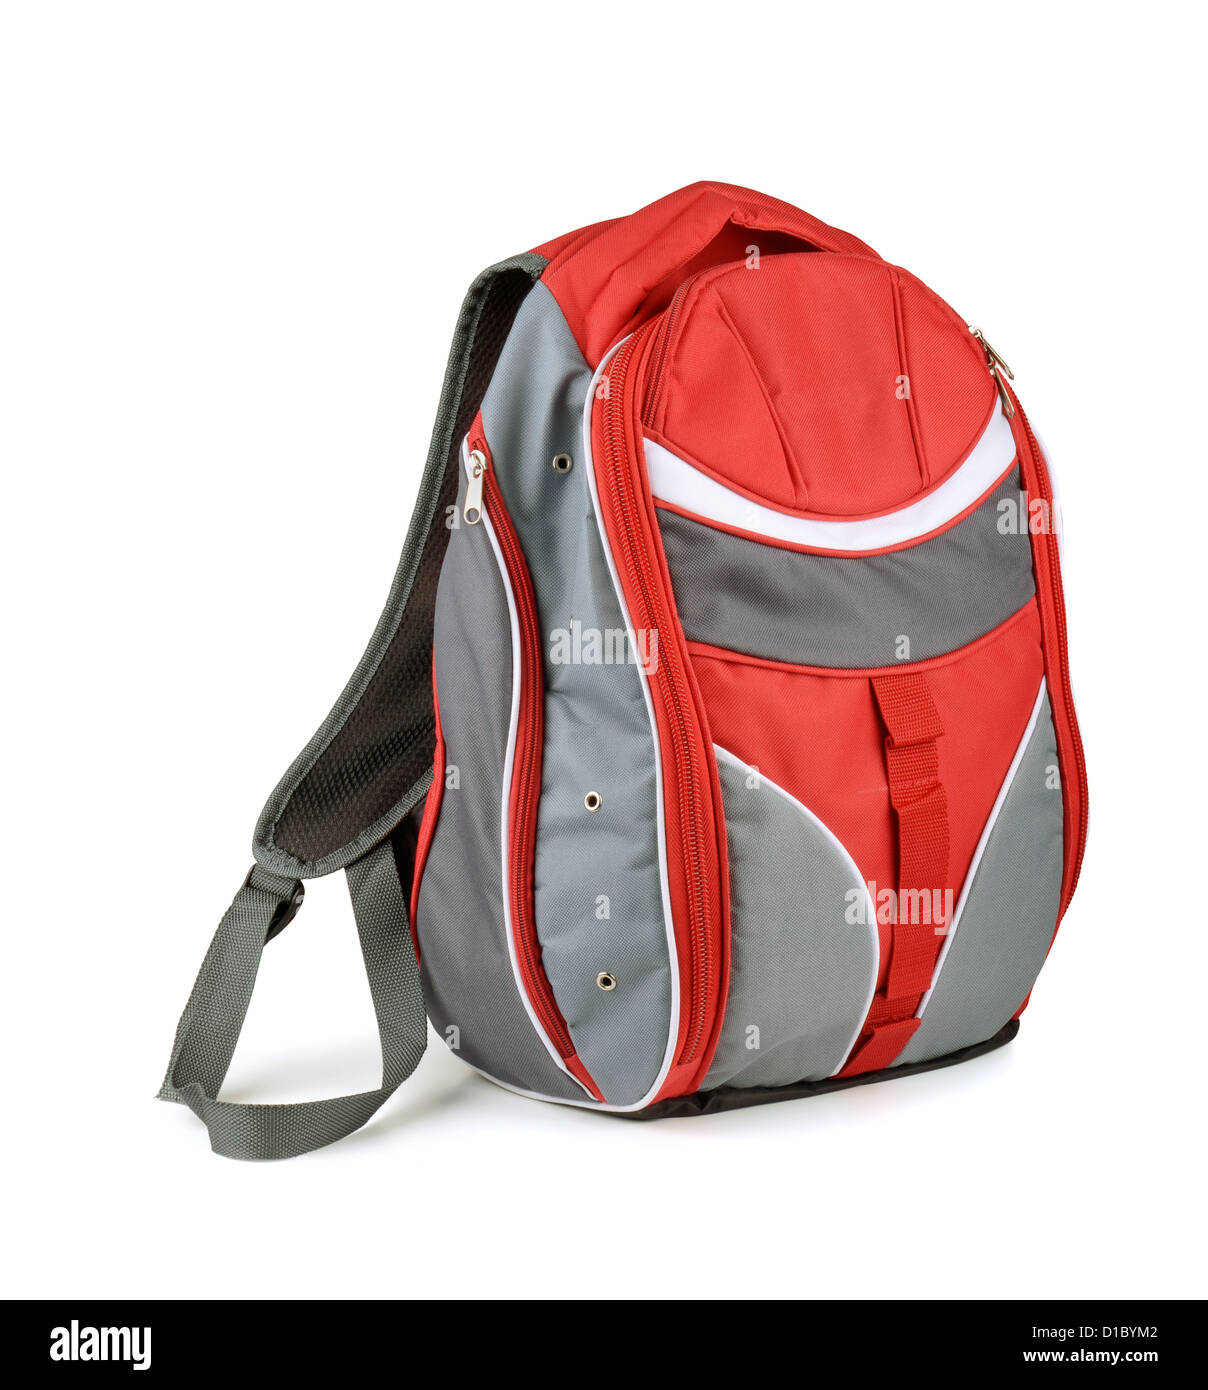 Red and gray backpack isolated on white - Stock Image